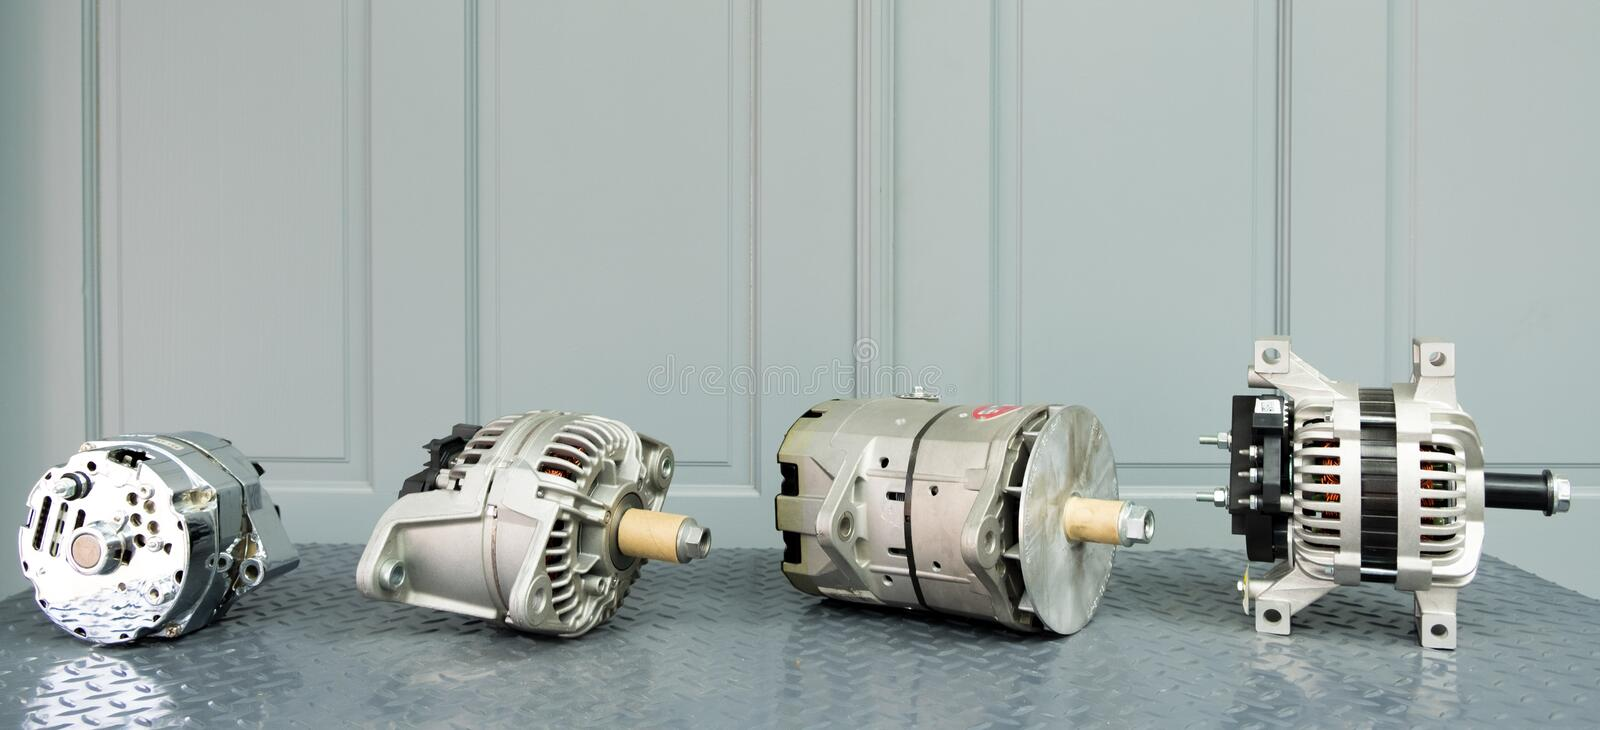 Car alternators on display on metal shelf/auto parts stock image